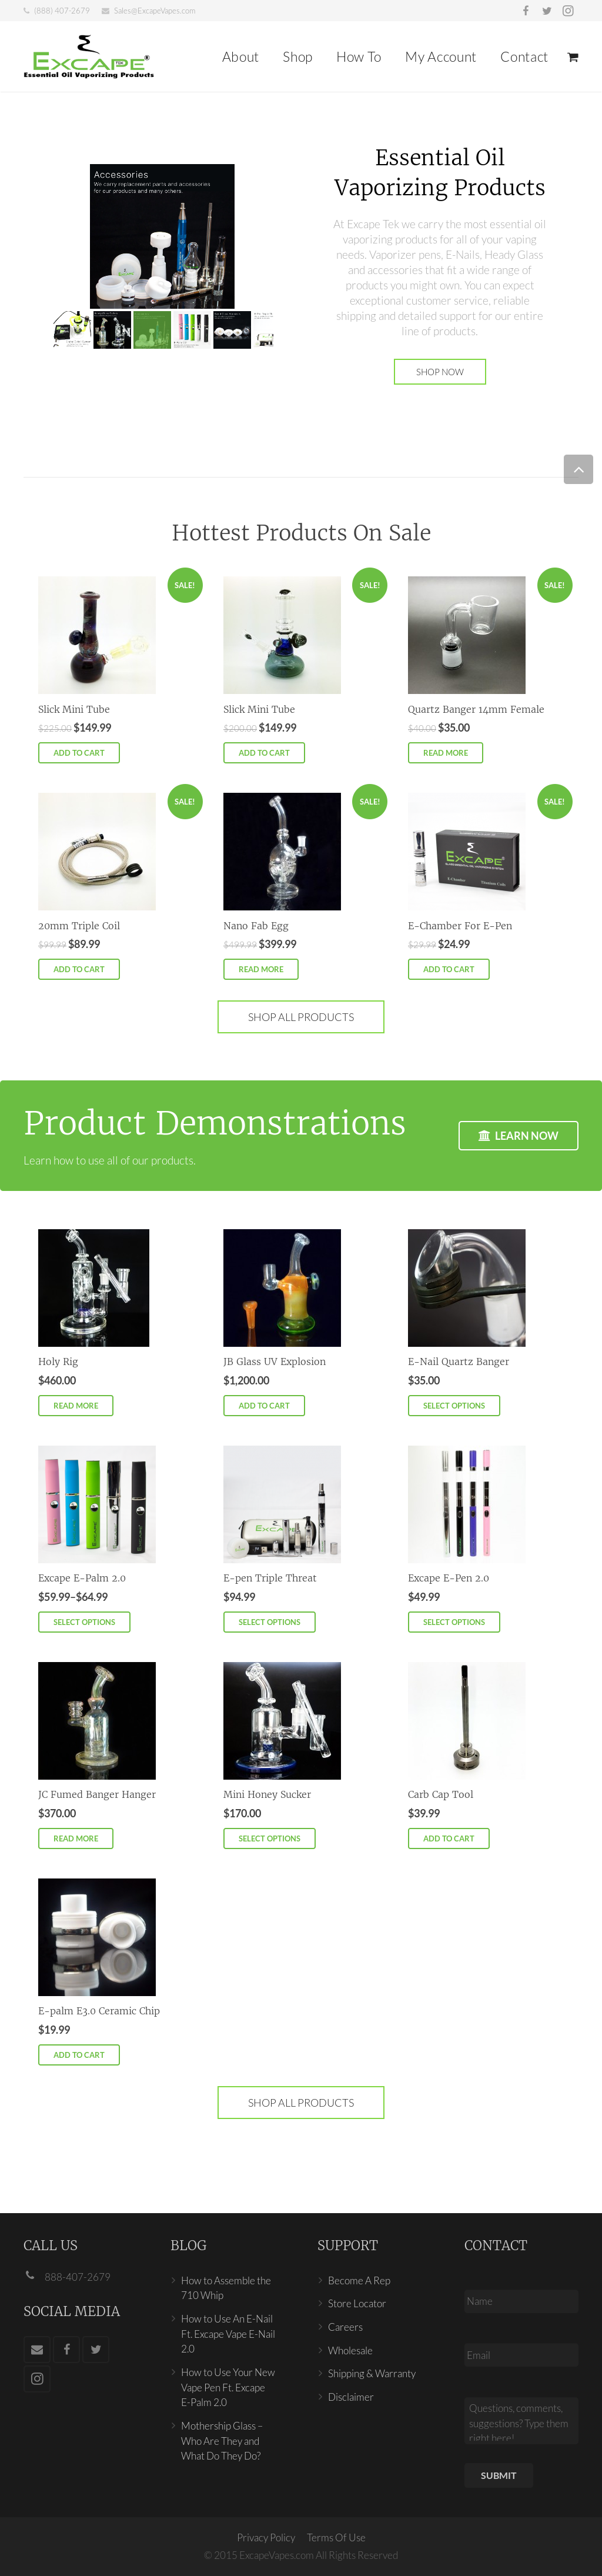 Excape Tek Essential Oil Vaporizing Products website history